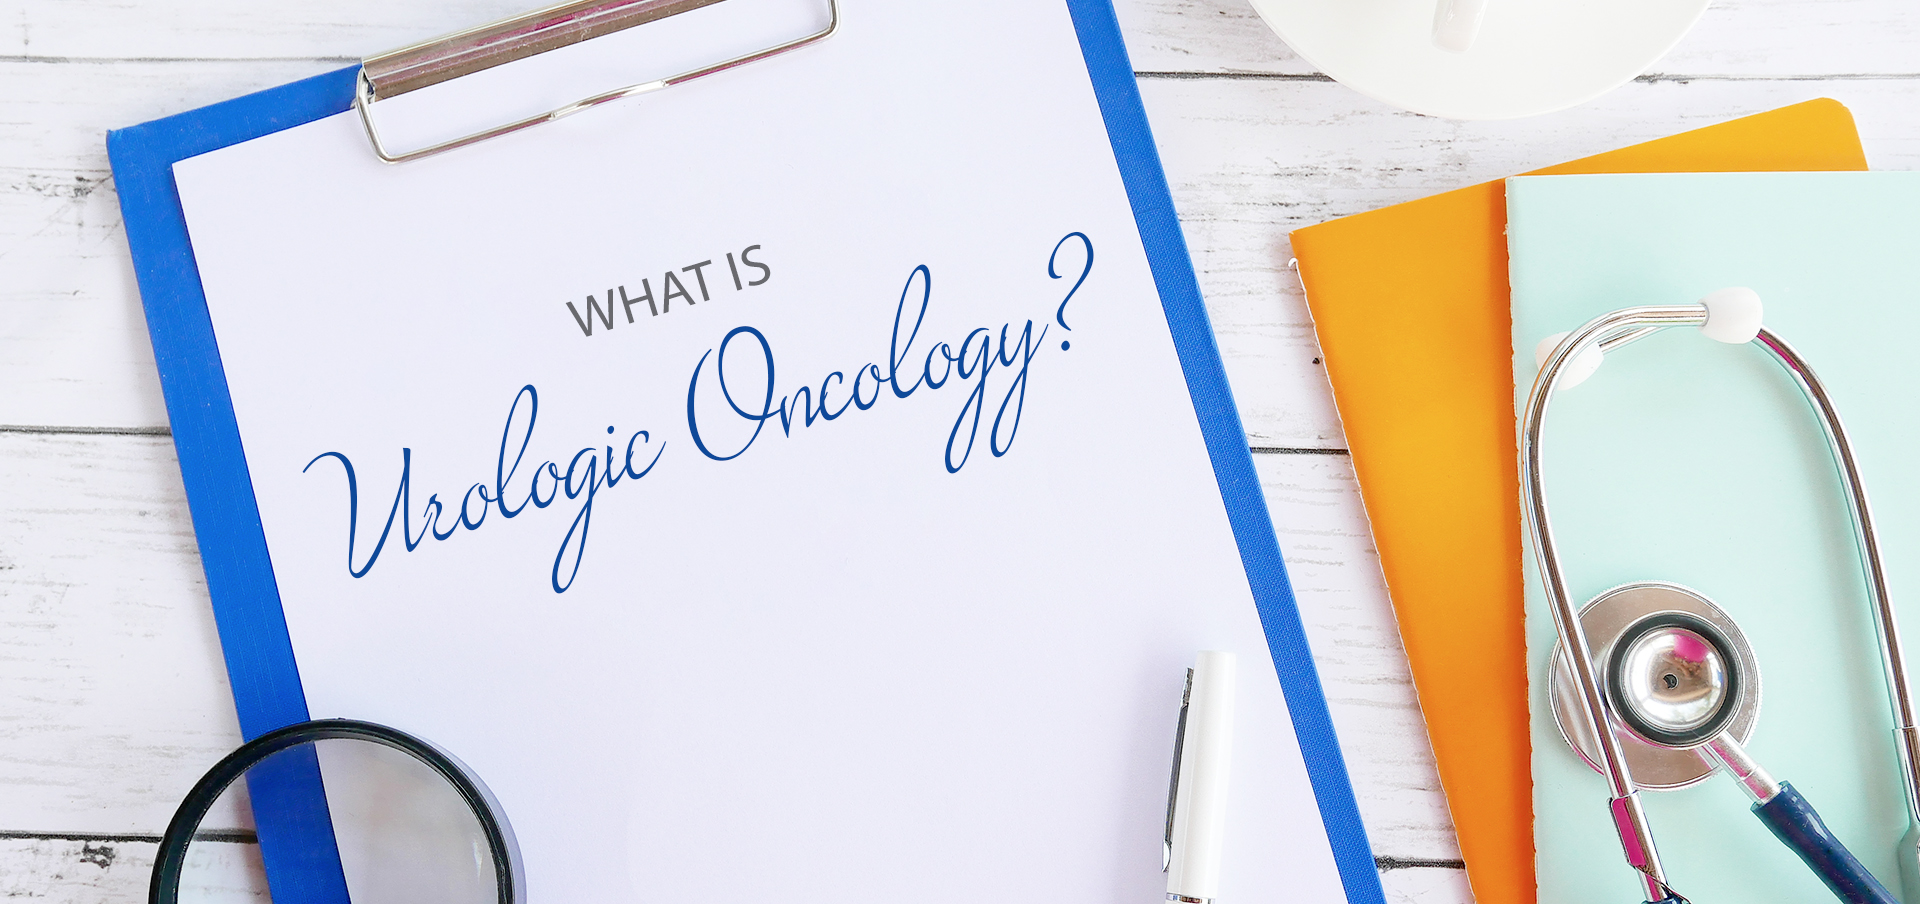 What is Urologic Oncology?